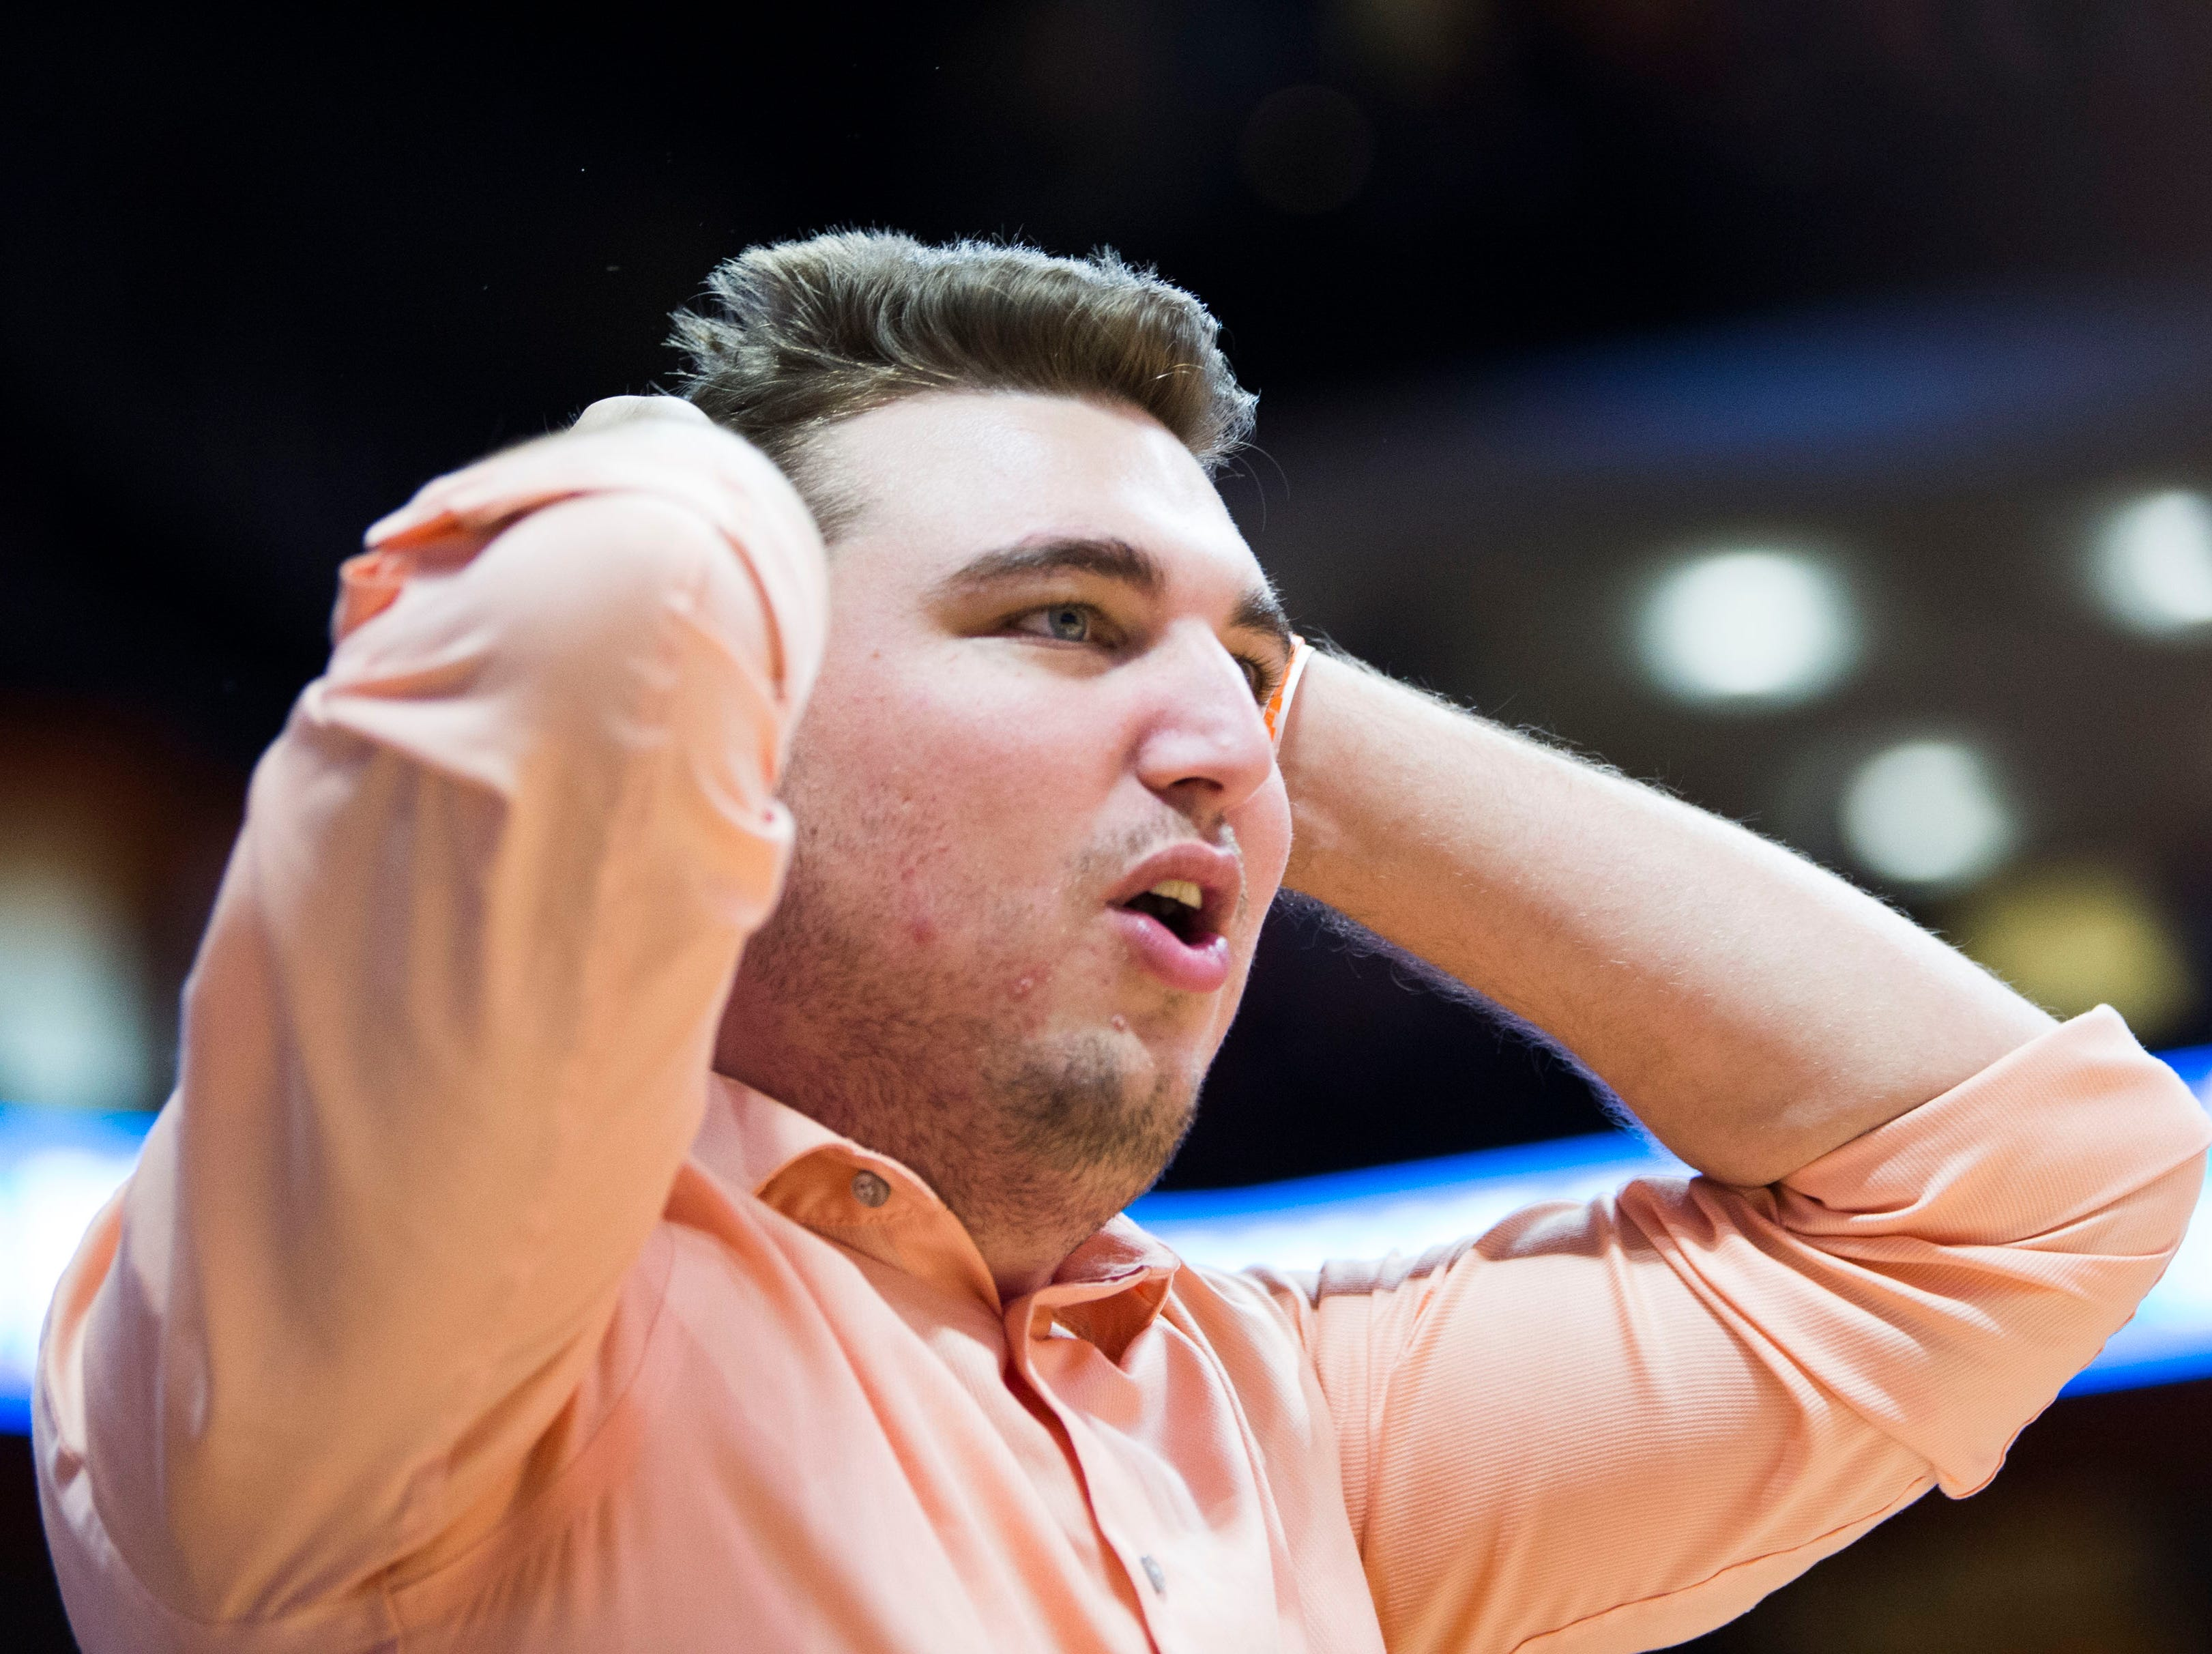 A fan reacts to a call during a college basketball game between Tennessee and Georgia at Thompson-Boling Arena Saturday, Jan. 5, 2019. Tennessee defeated Georgia 96-50.